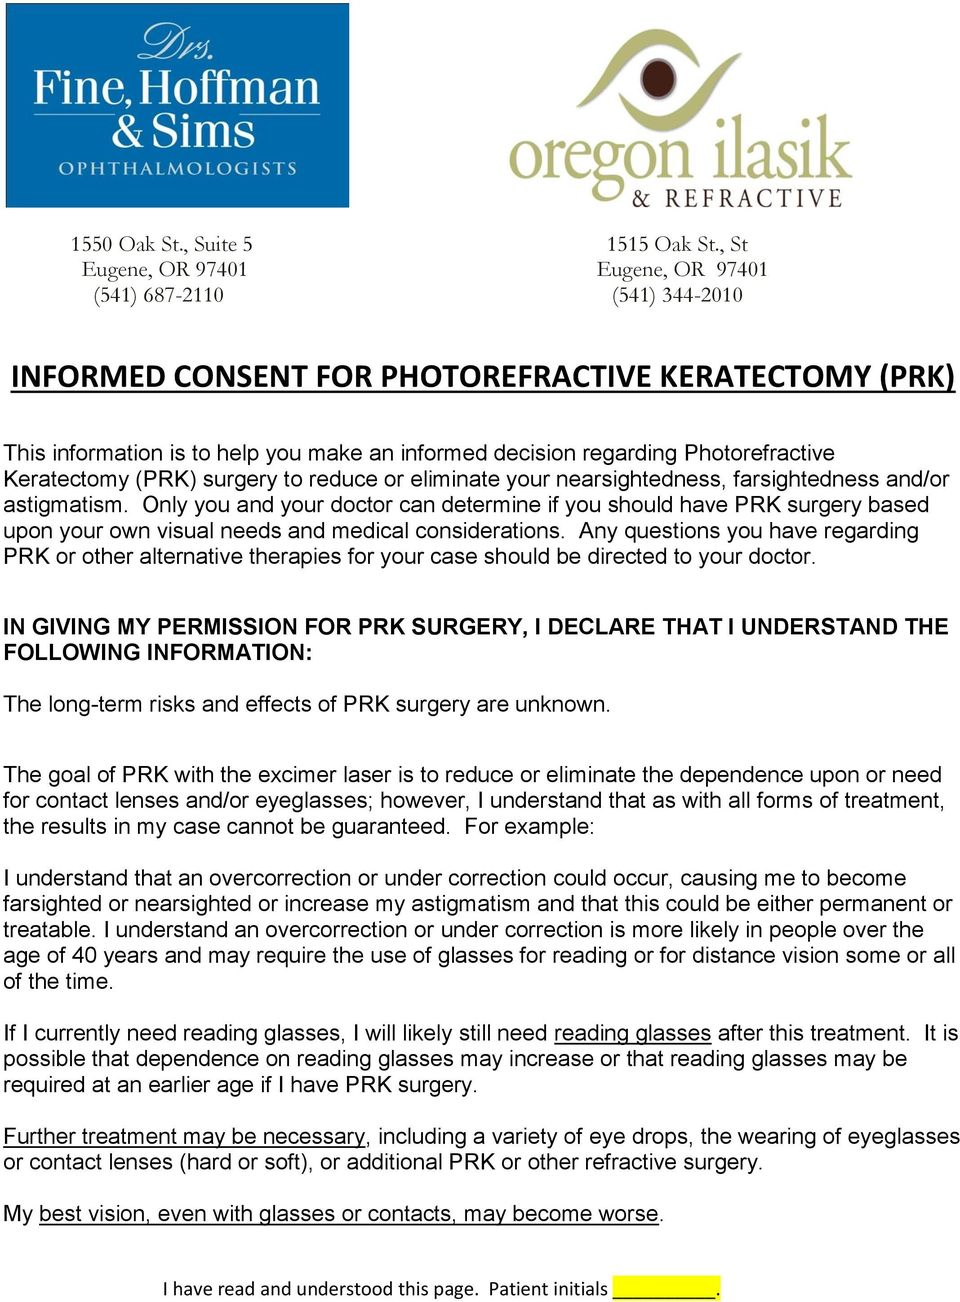 Photorefractive Keratectomy (PRK) surgery to reduce or eliminate your nearsightedness, farsightedness and/or astigmatism.